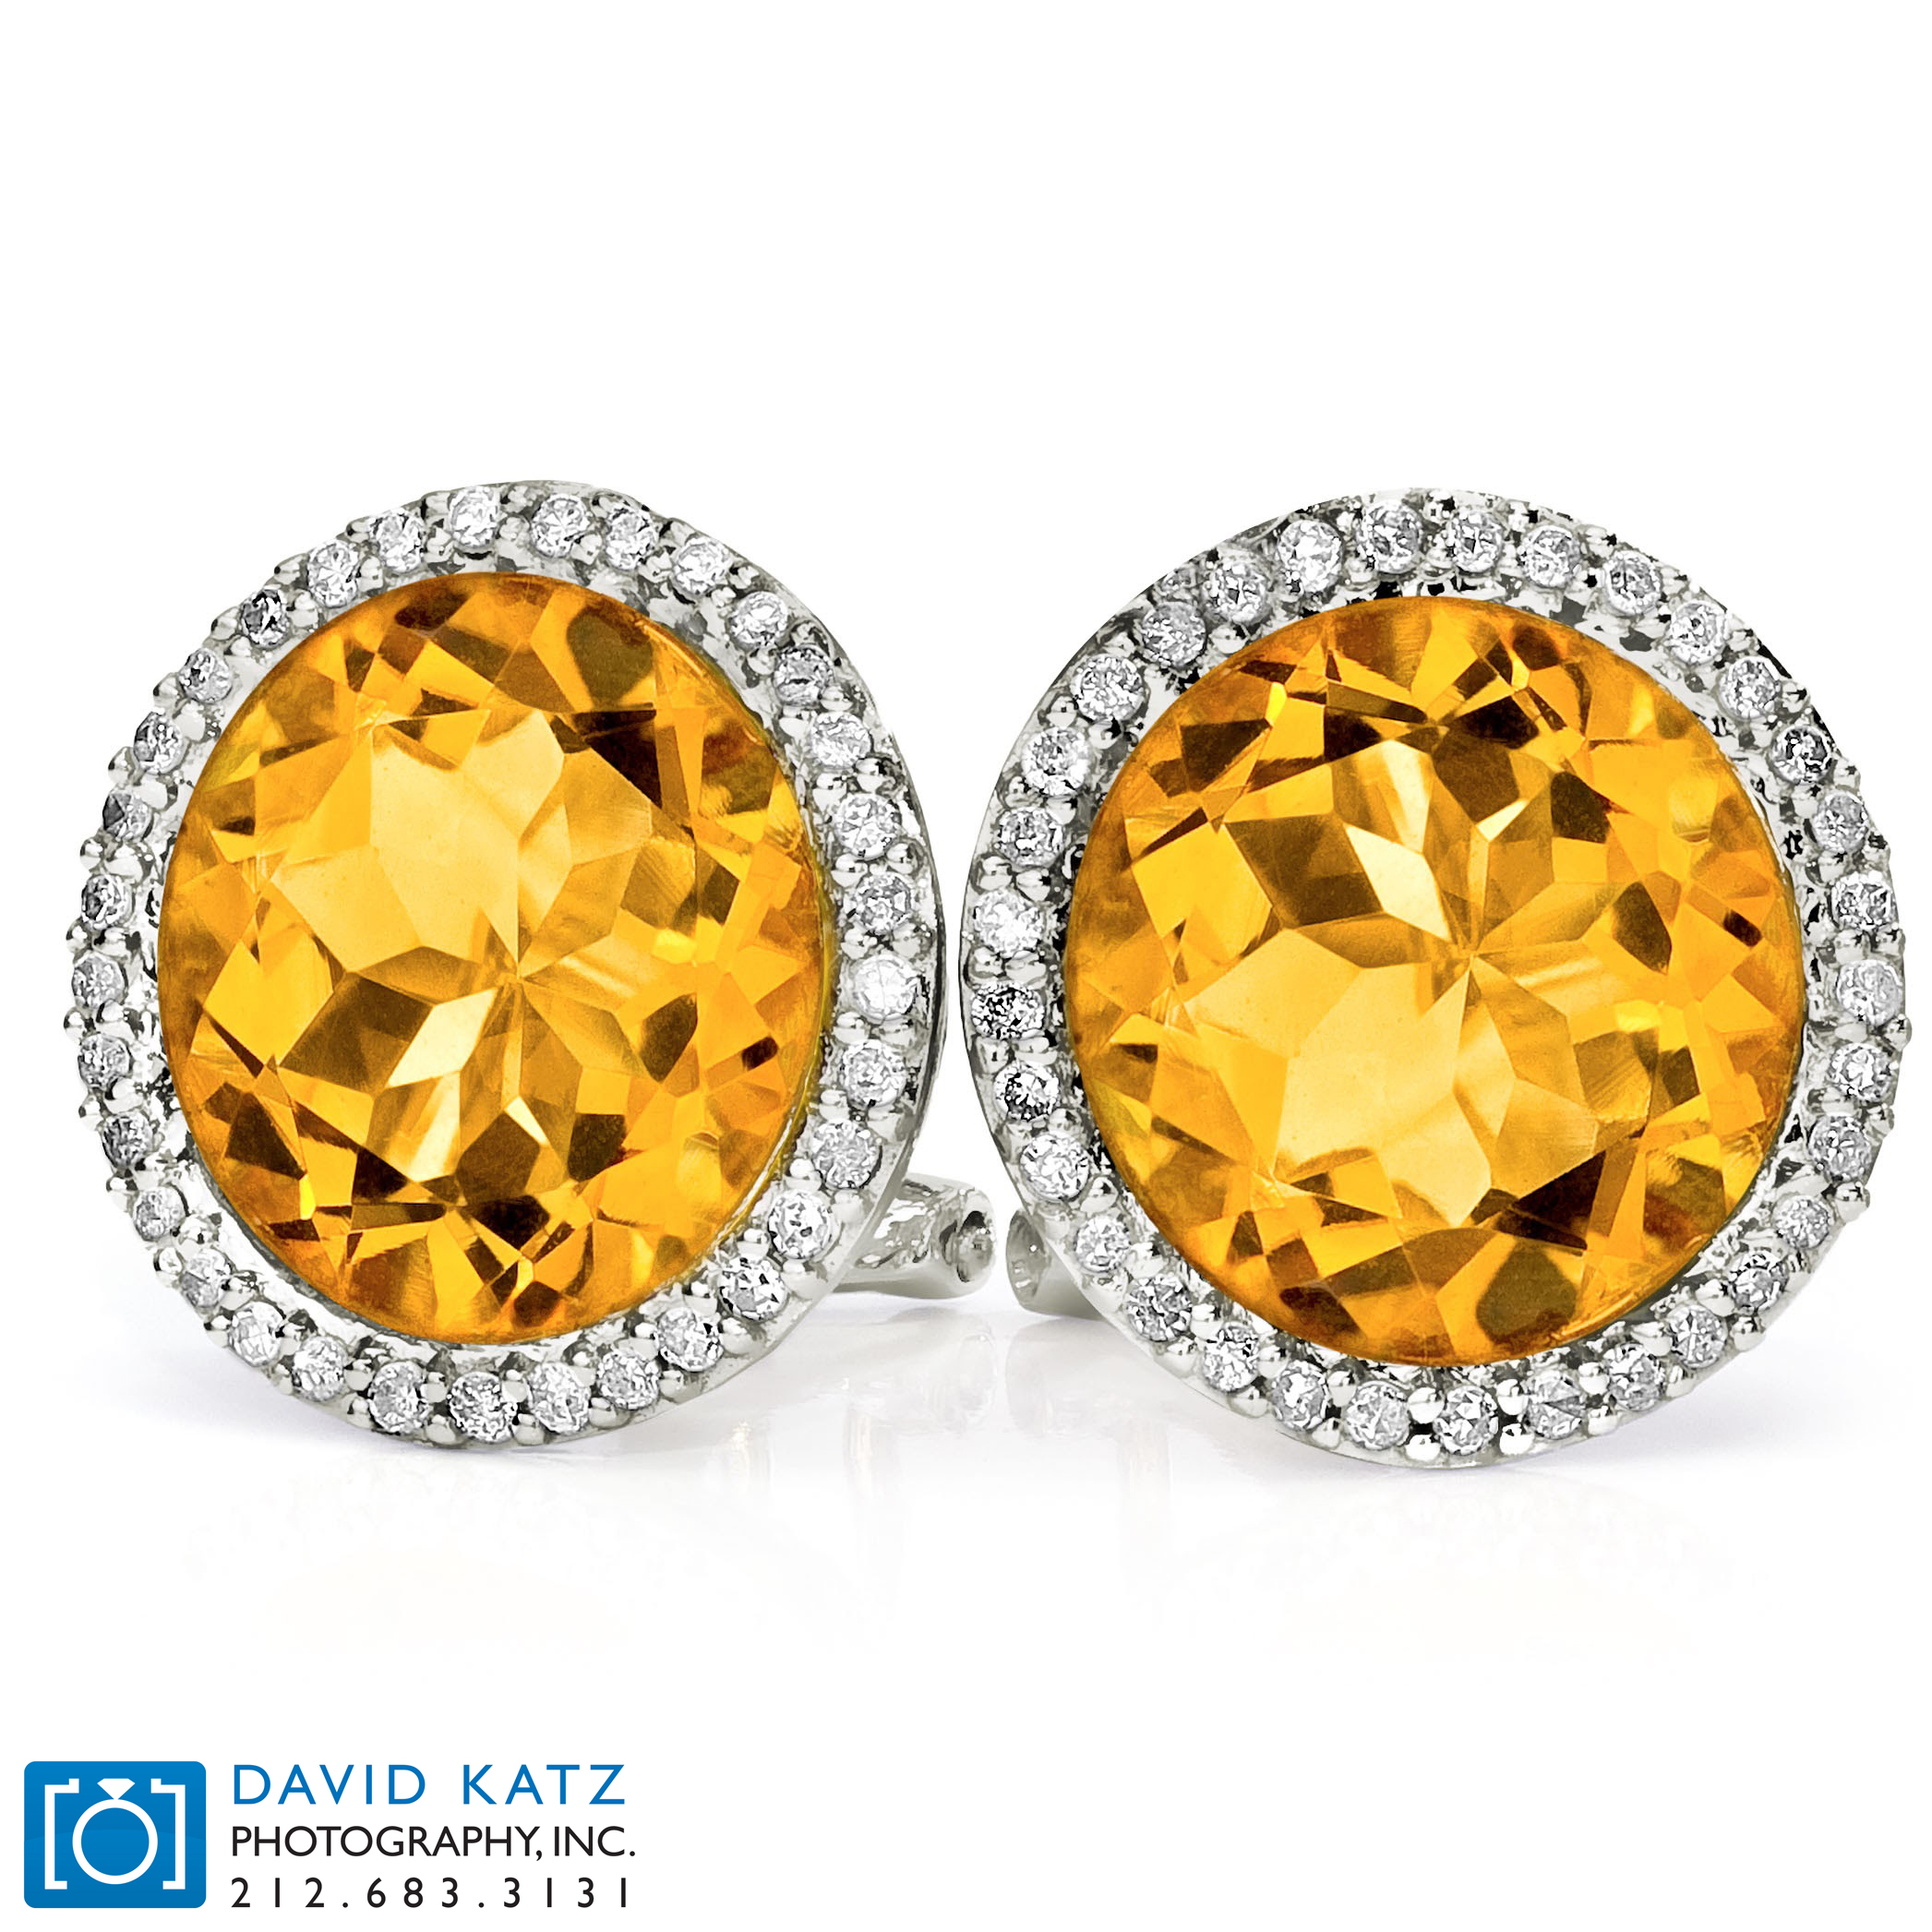 colored diamond earrings studs_NEWLOGO.jpg